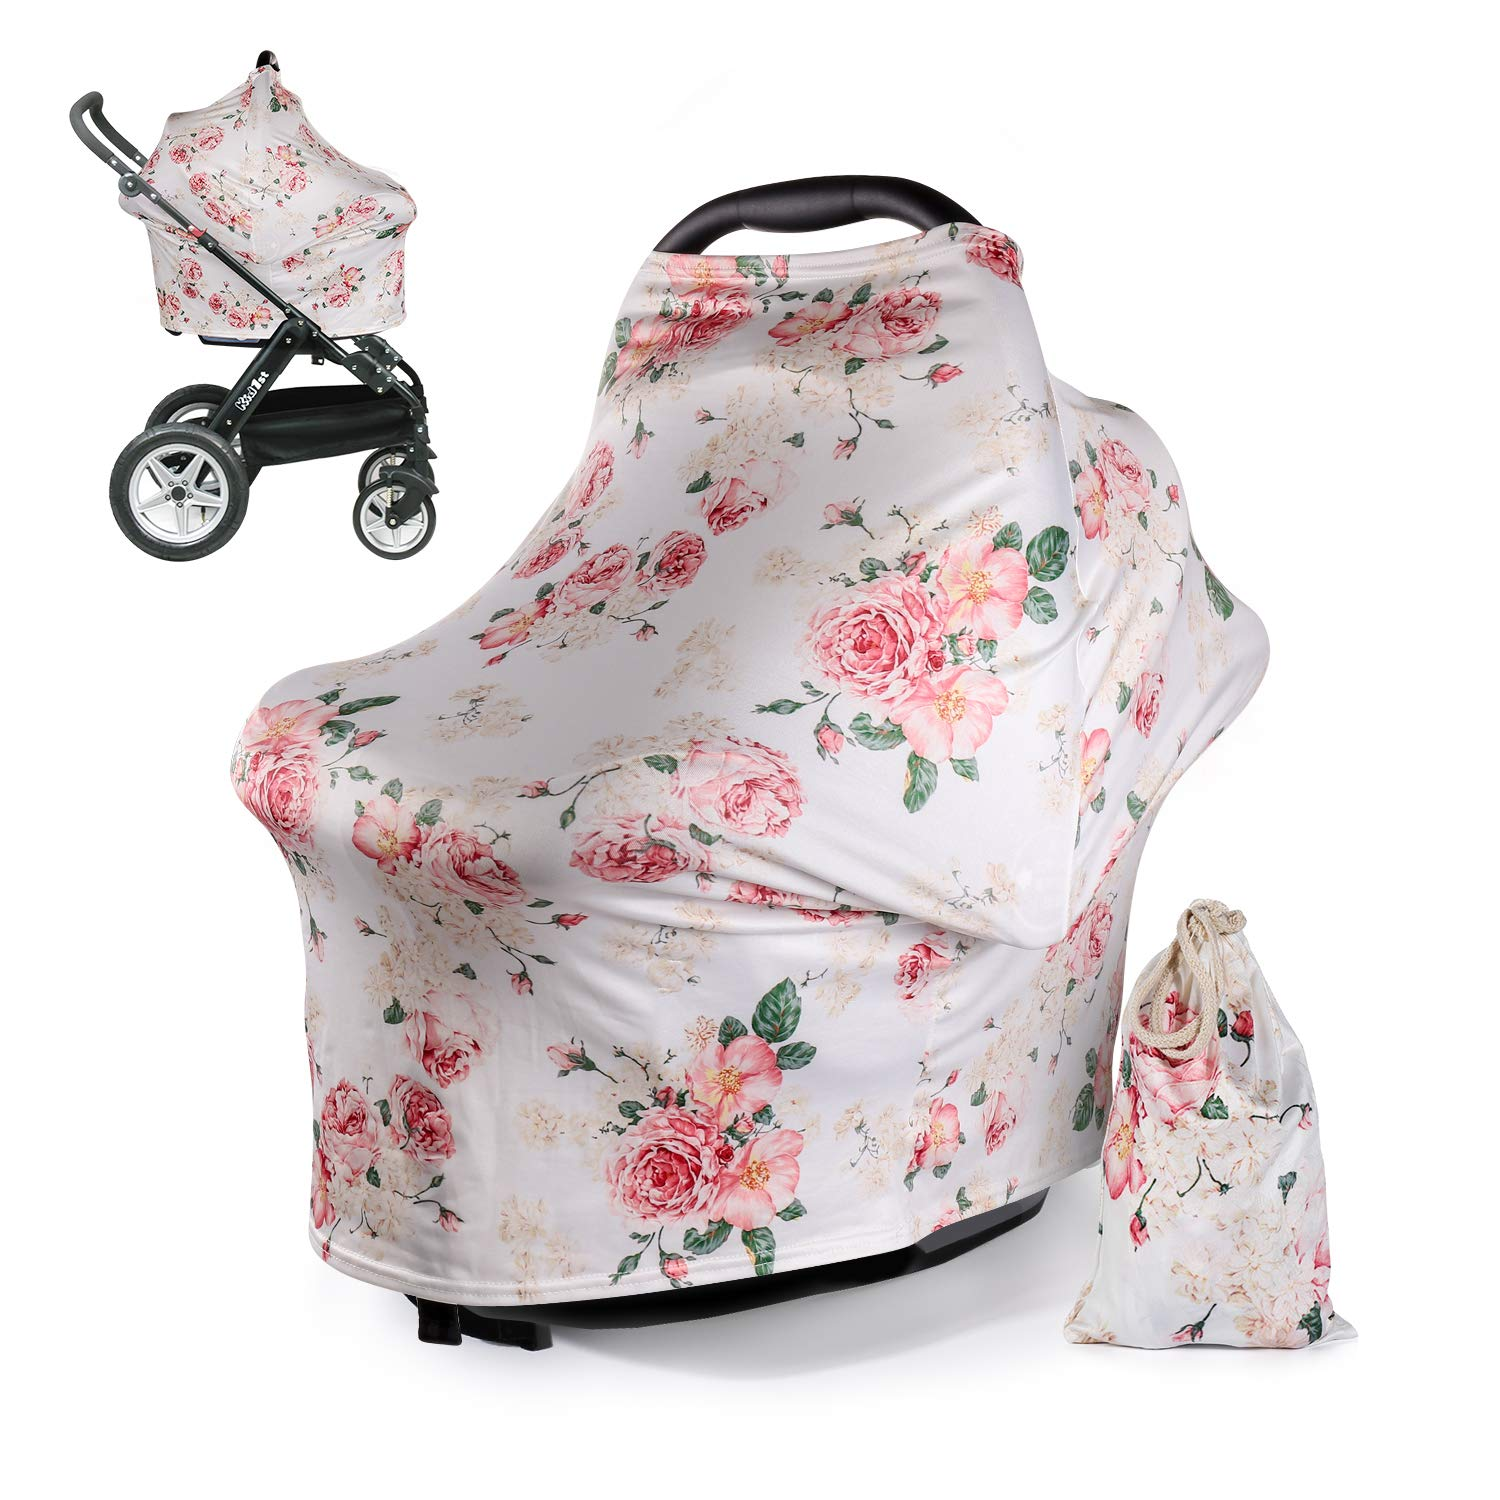 DSYJ Nursing Cover Baby Breastfeeding Scarf with Free Matching Pouch, Car Seat Covers, Boys and Girls Shower Gifts, Multifunctional Cover - Floral by DSYJ